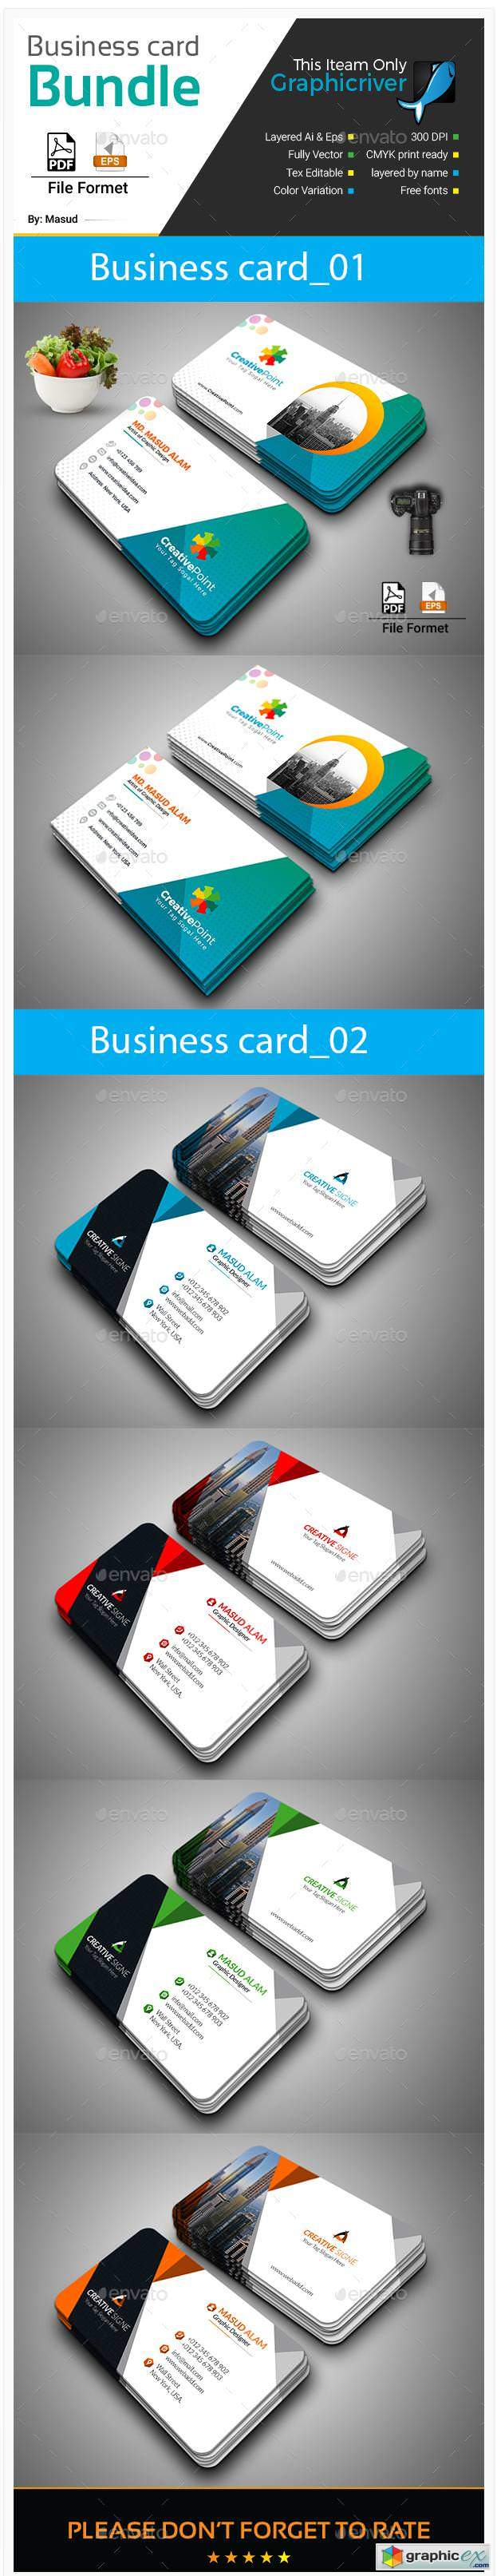 Business Card Bundle 2 in 1 22188736